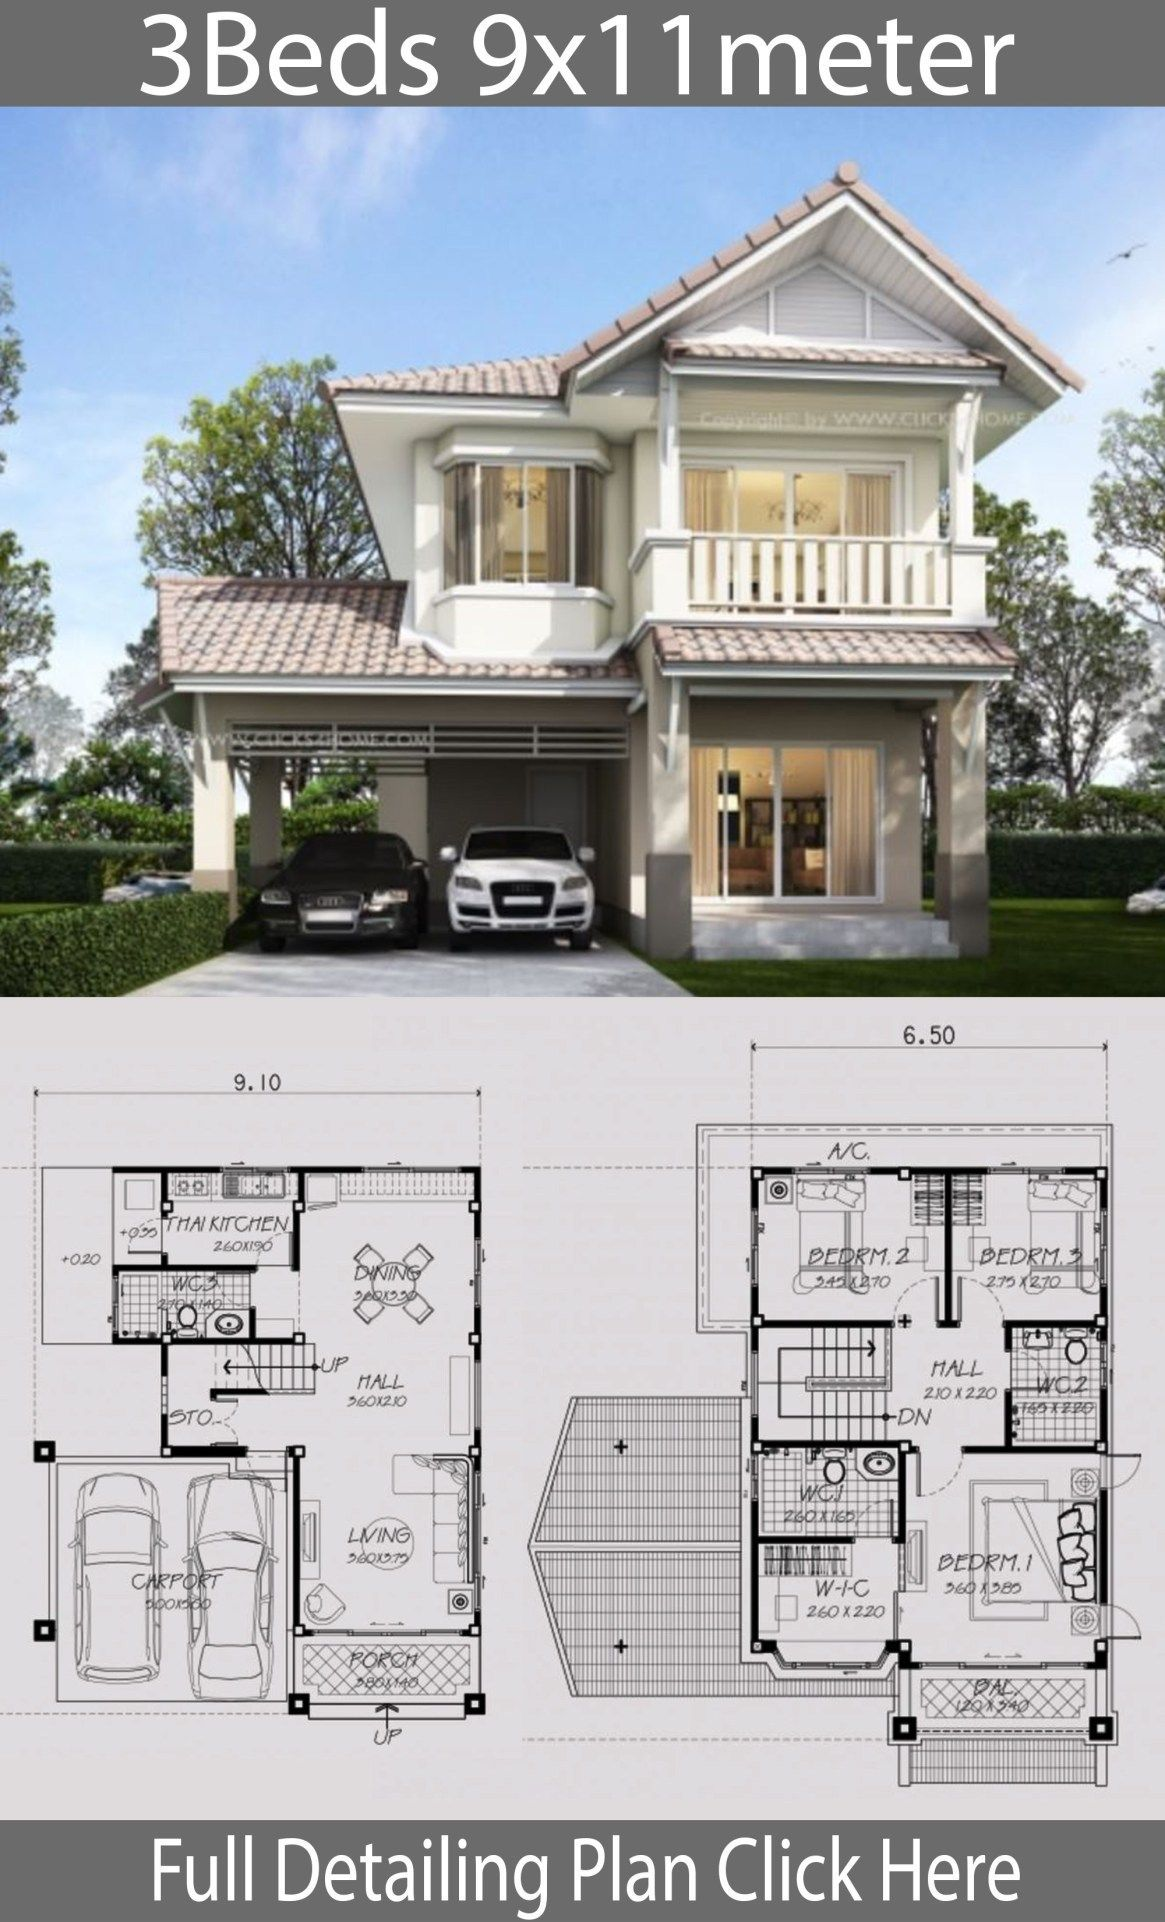 Home Design Plan 9x11m With 3 Bedrooms 3 9x11m Bedrooms Design Home Plan Wi In 2020 House Designs Exterior Architectural House Plans Modern Style House Plans